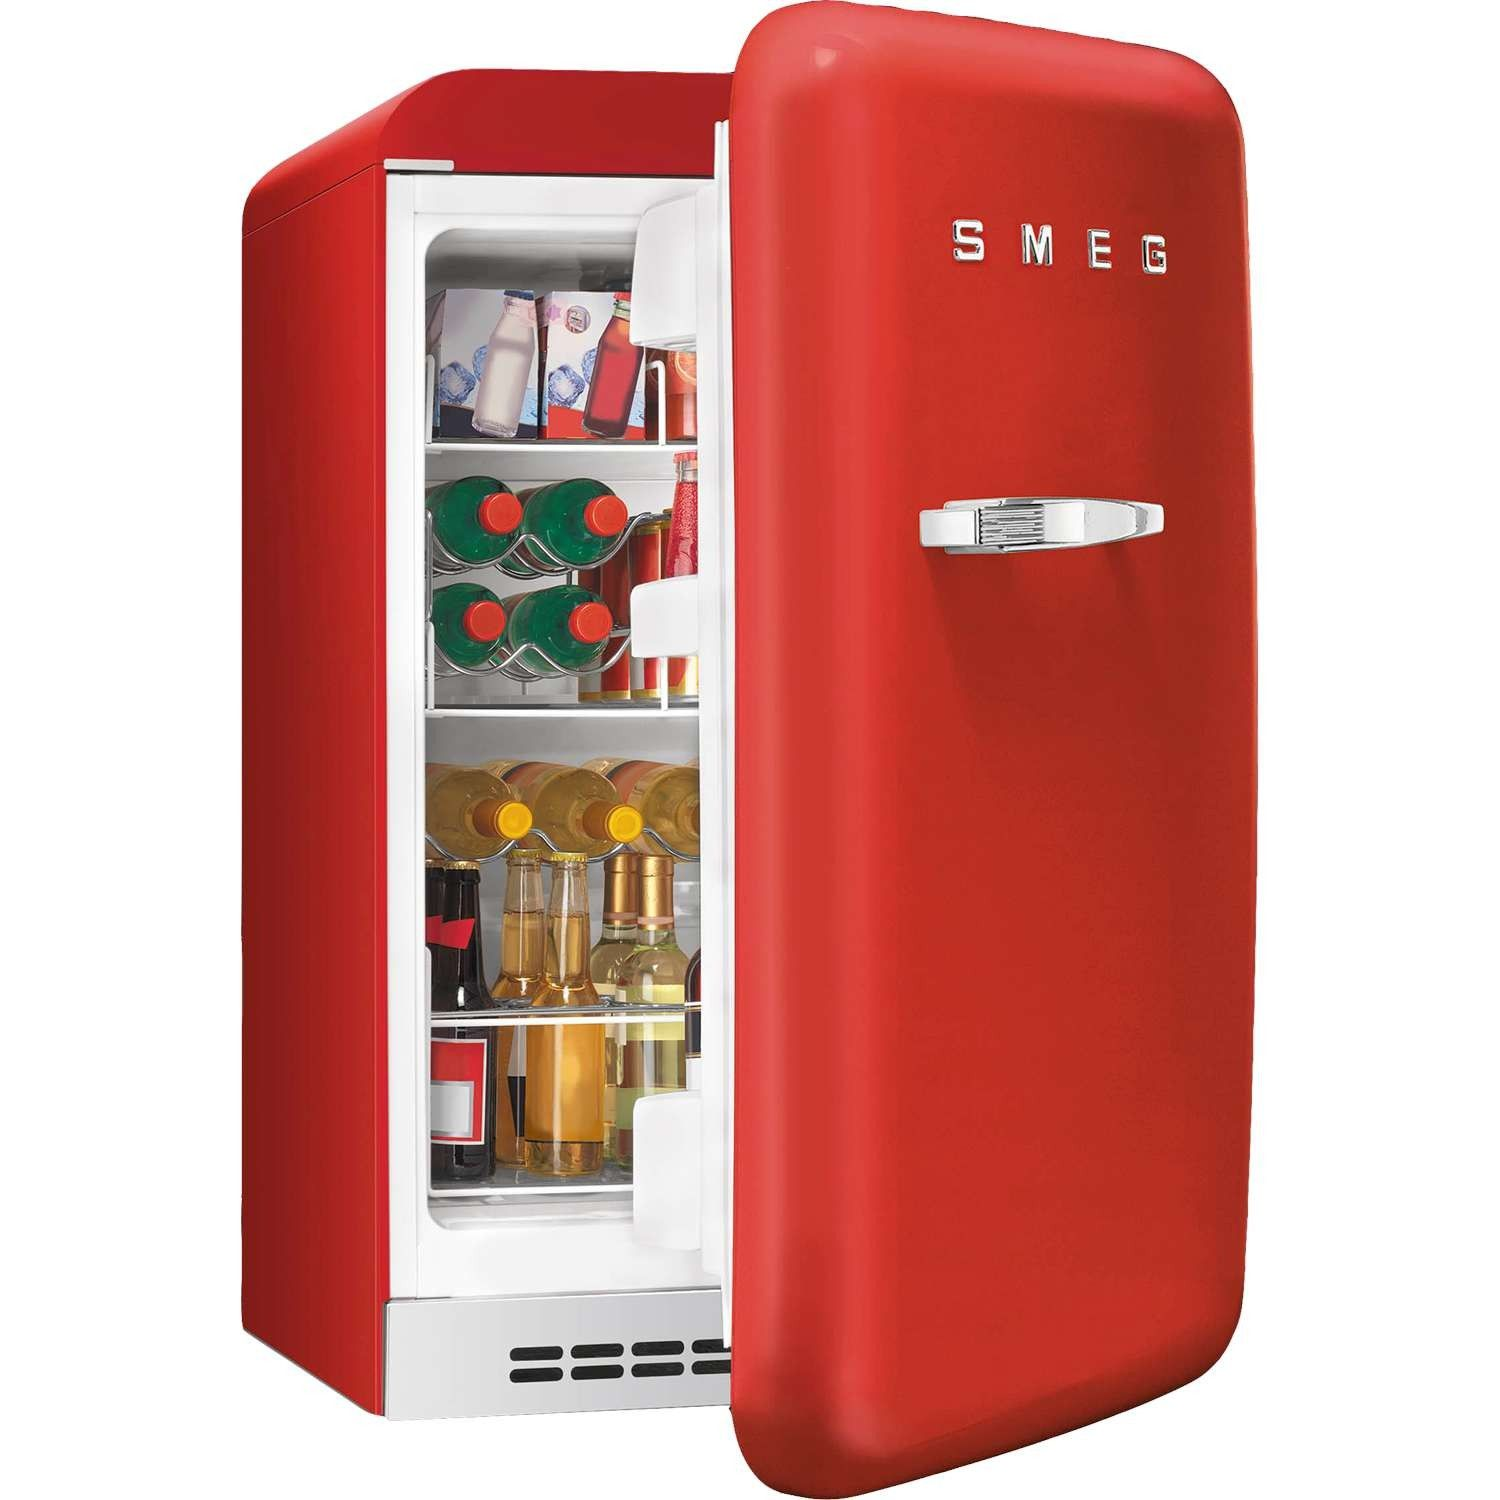 Smeg Fab10hrr 50s Retro Style Freestanding Home Bar Fridge